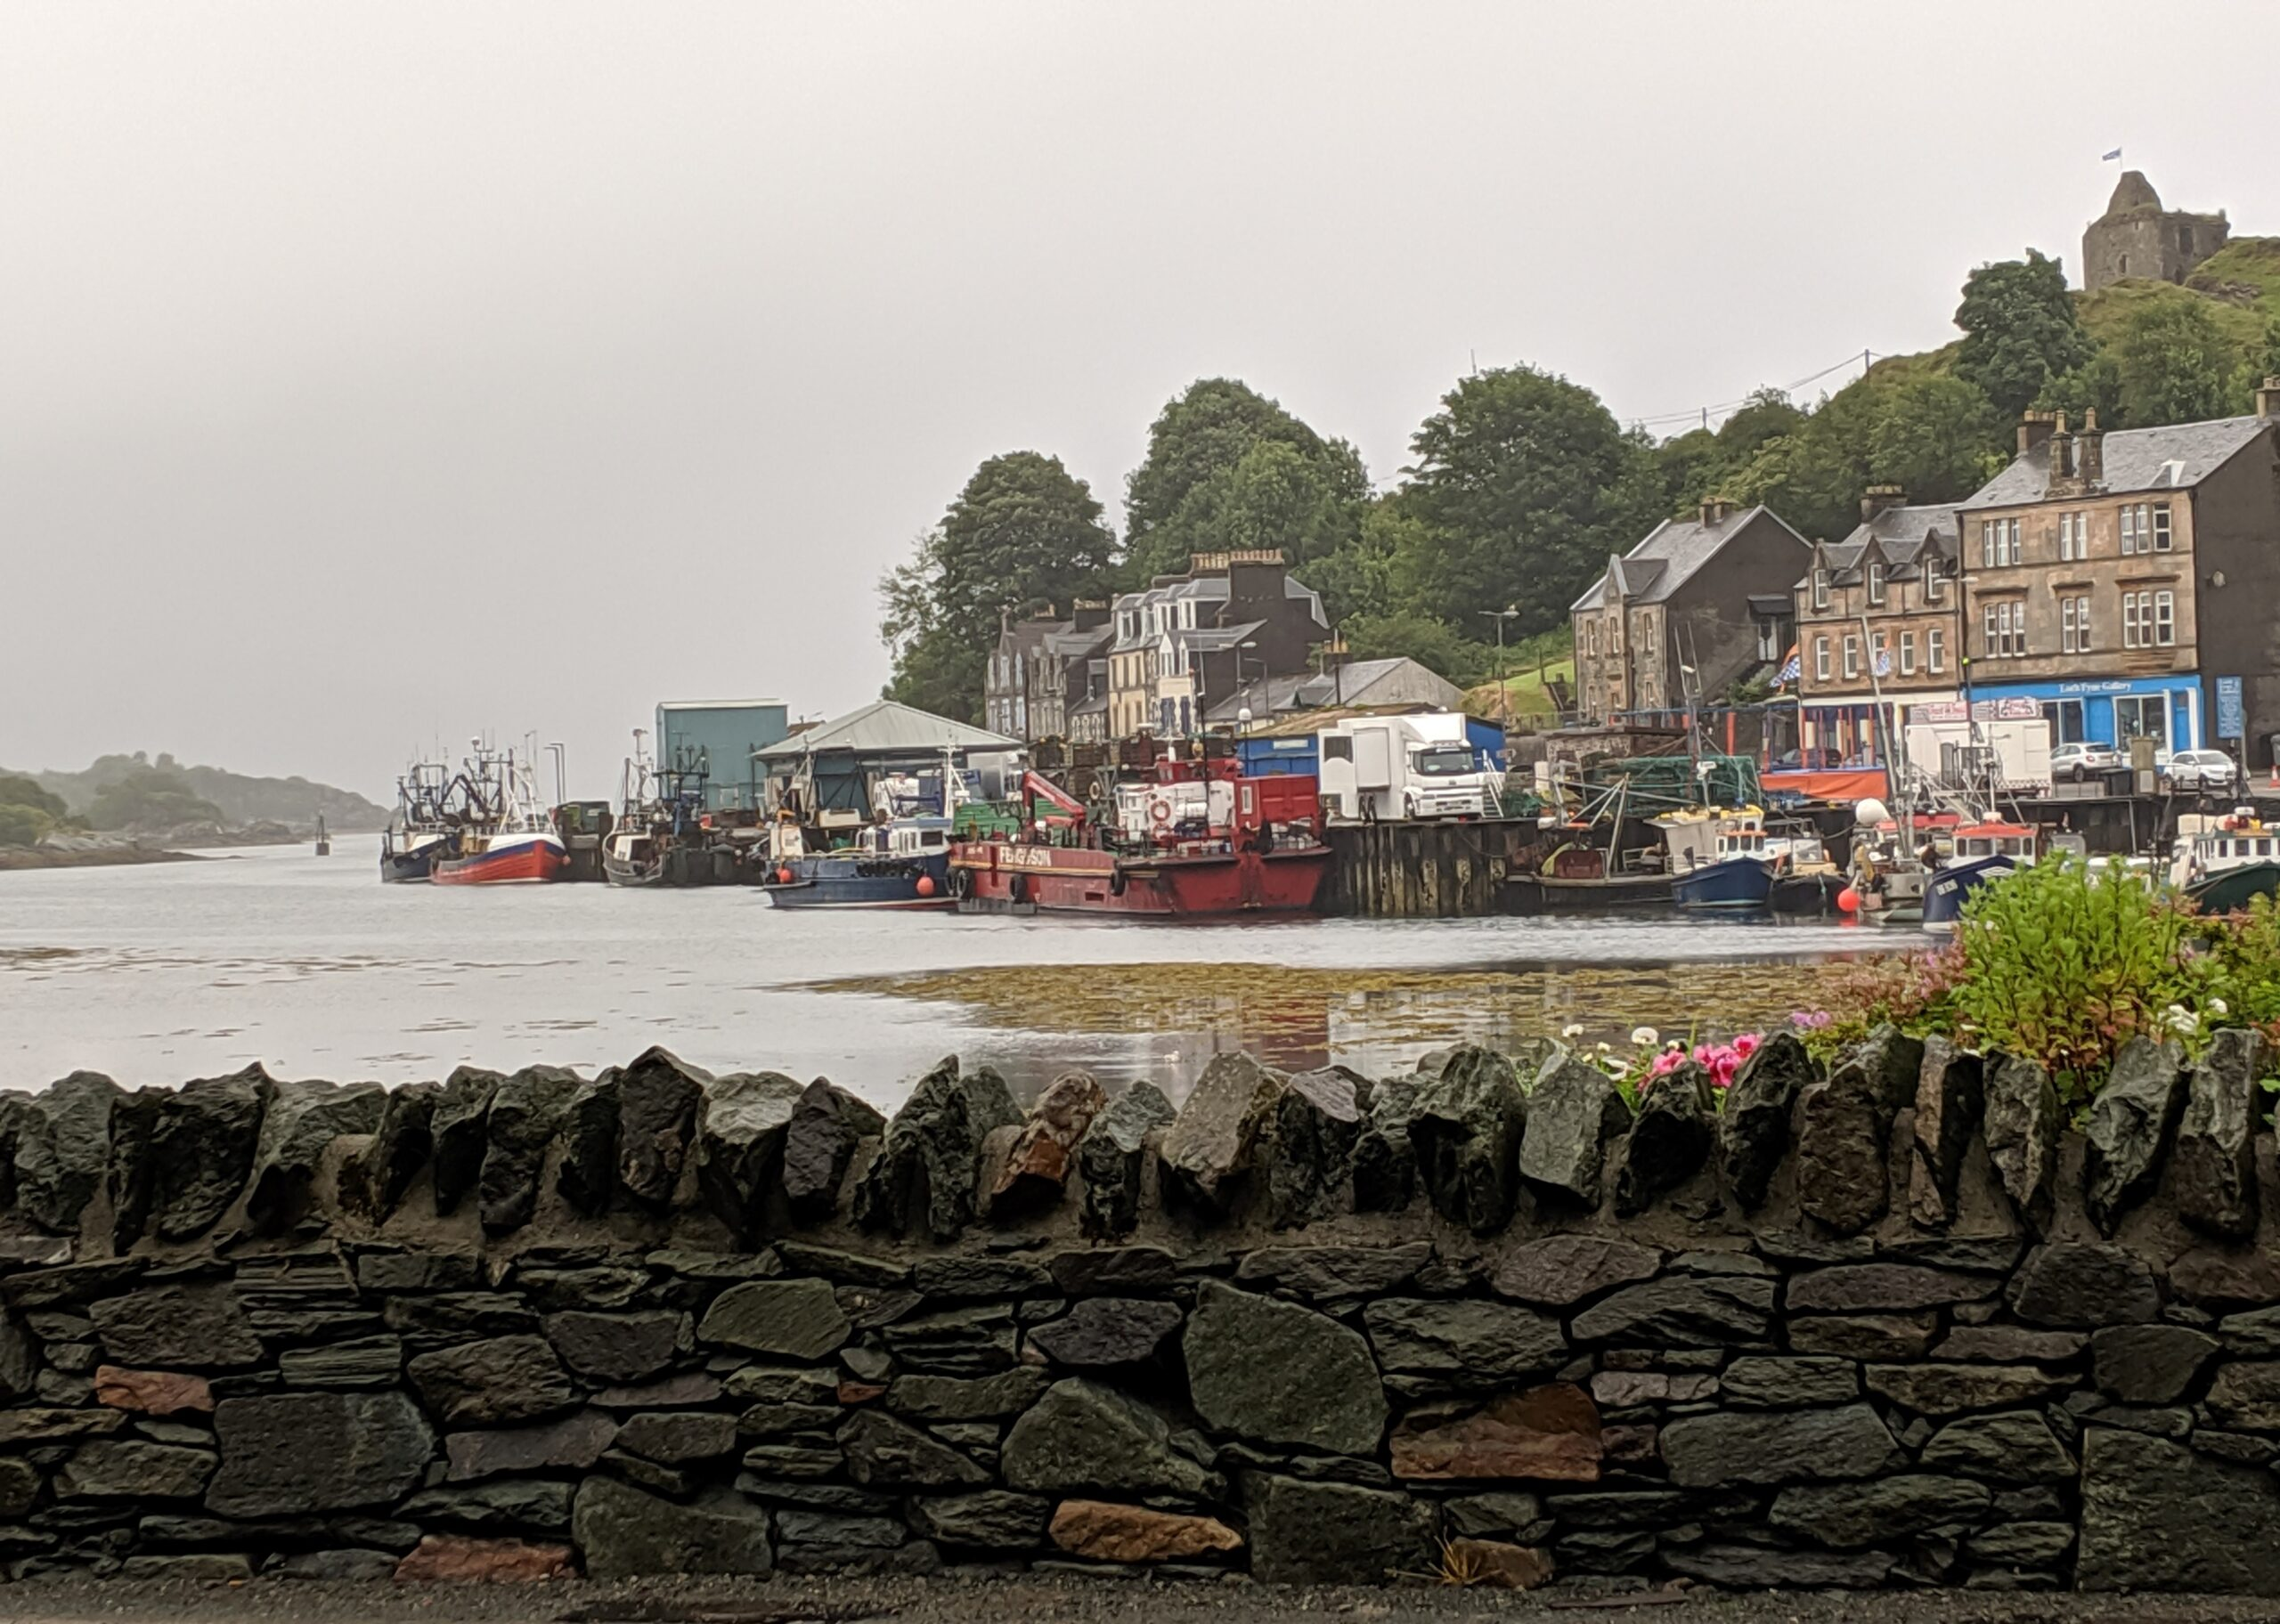 Tarbert harbor with stone wall in foreground. On the right a hill slopes steeply down to the harbor with village buildings clustered next to the water. At the top of the hill at right is a ruined castle.